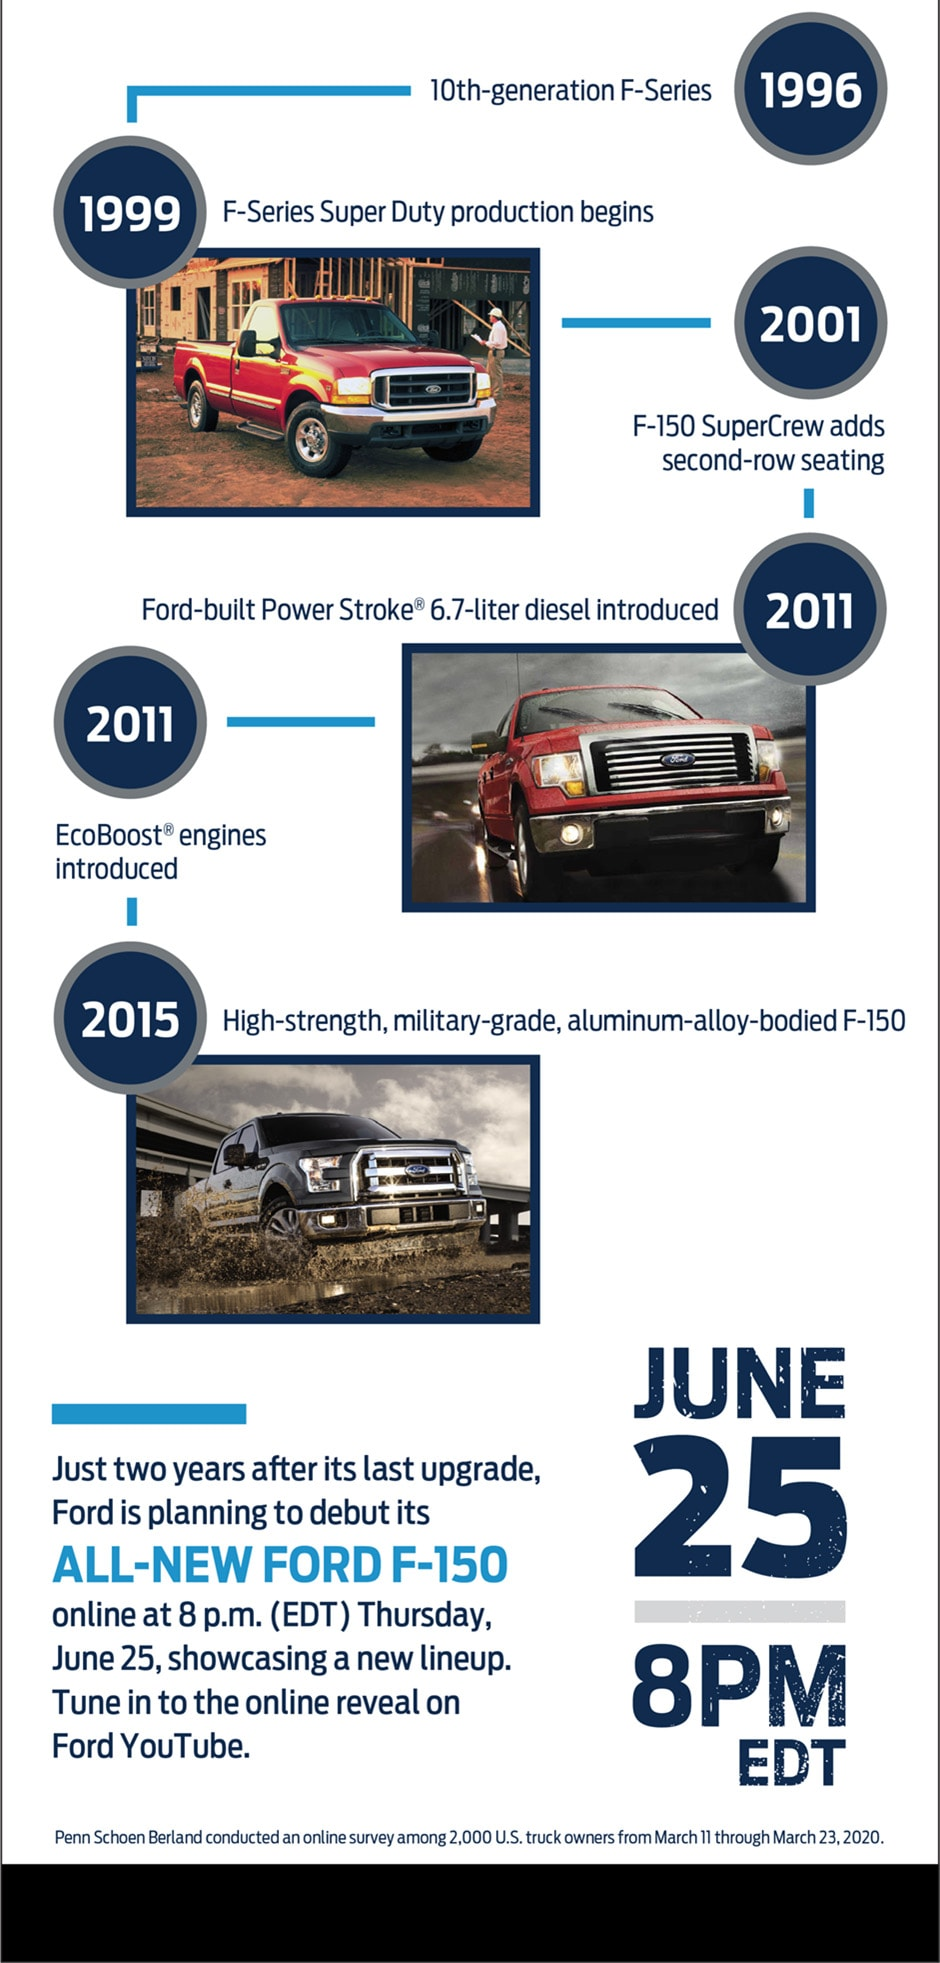 history of the f-150